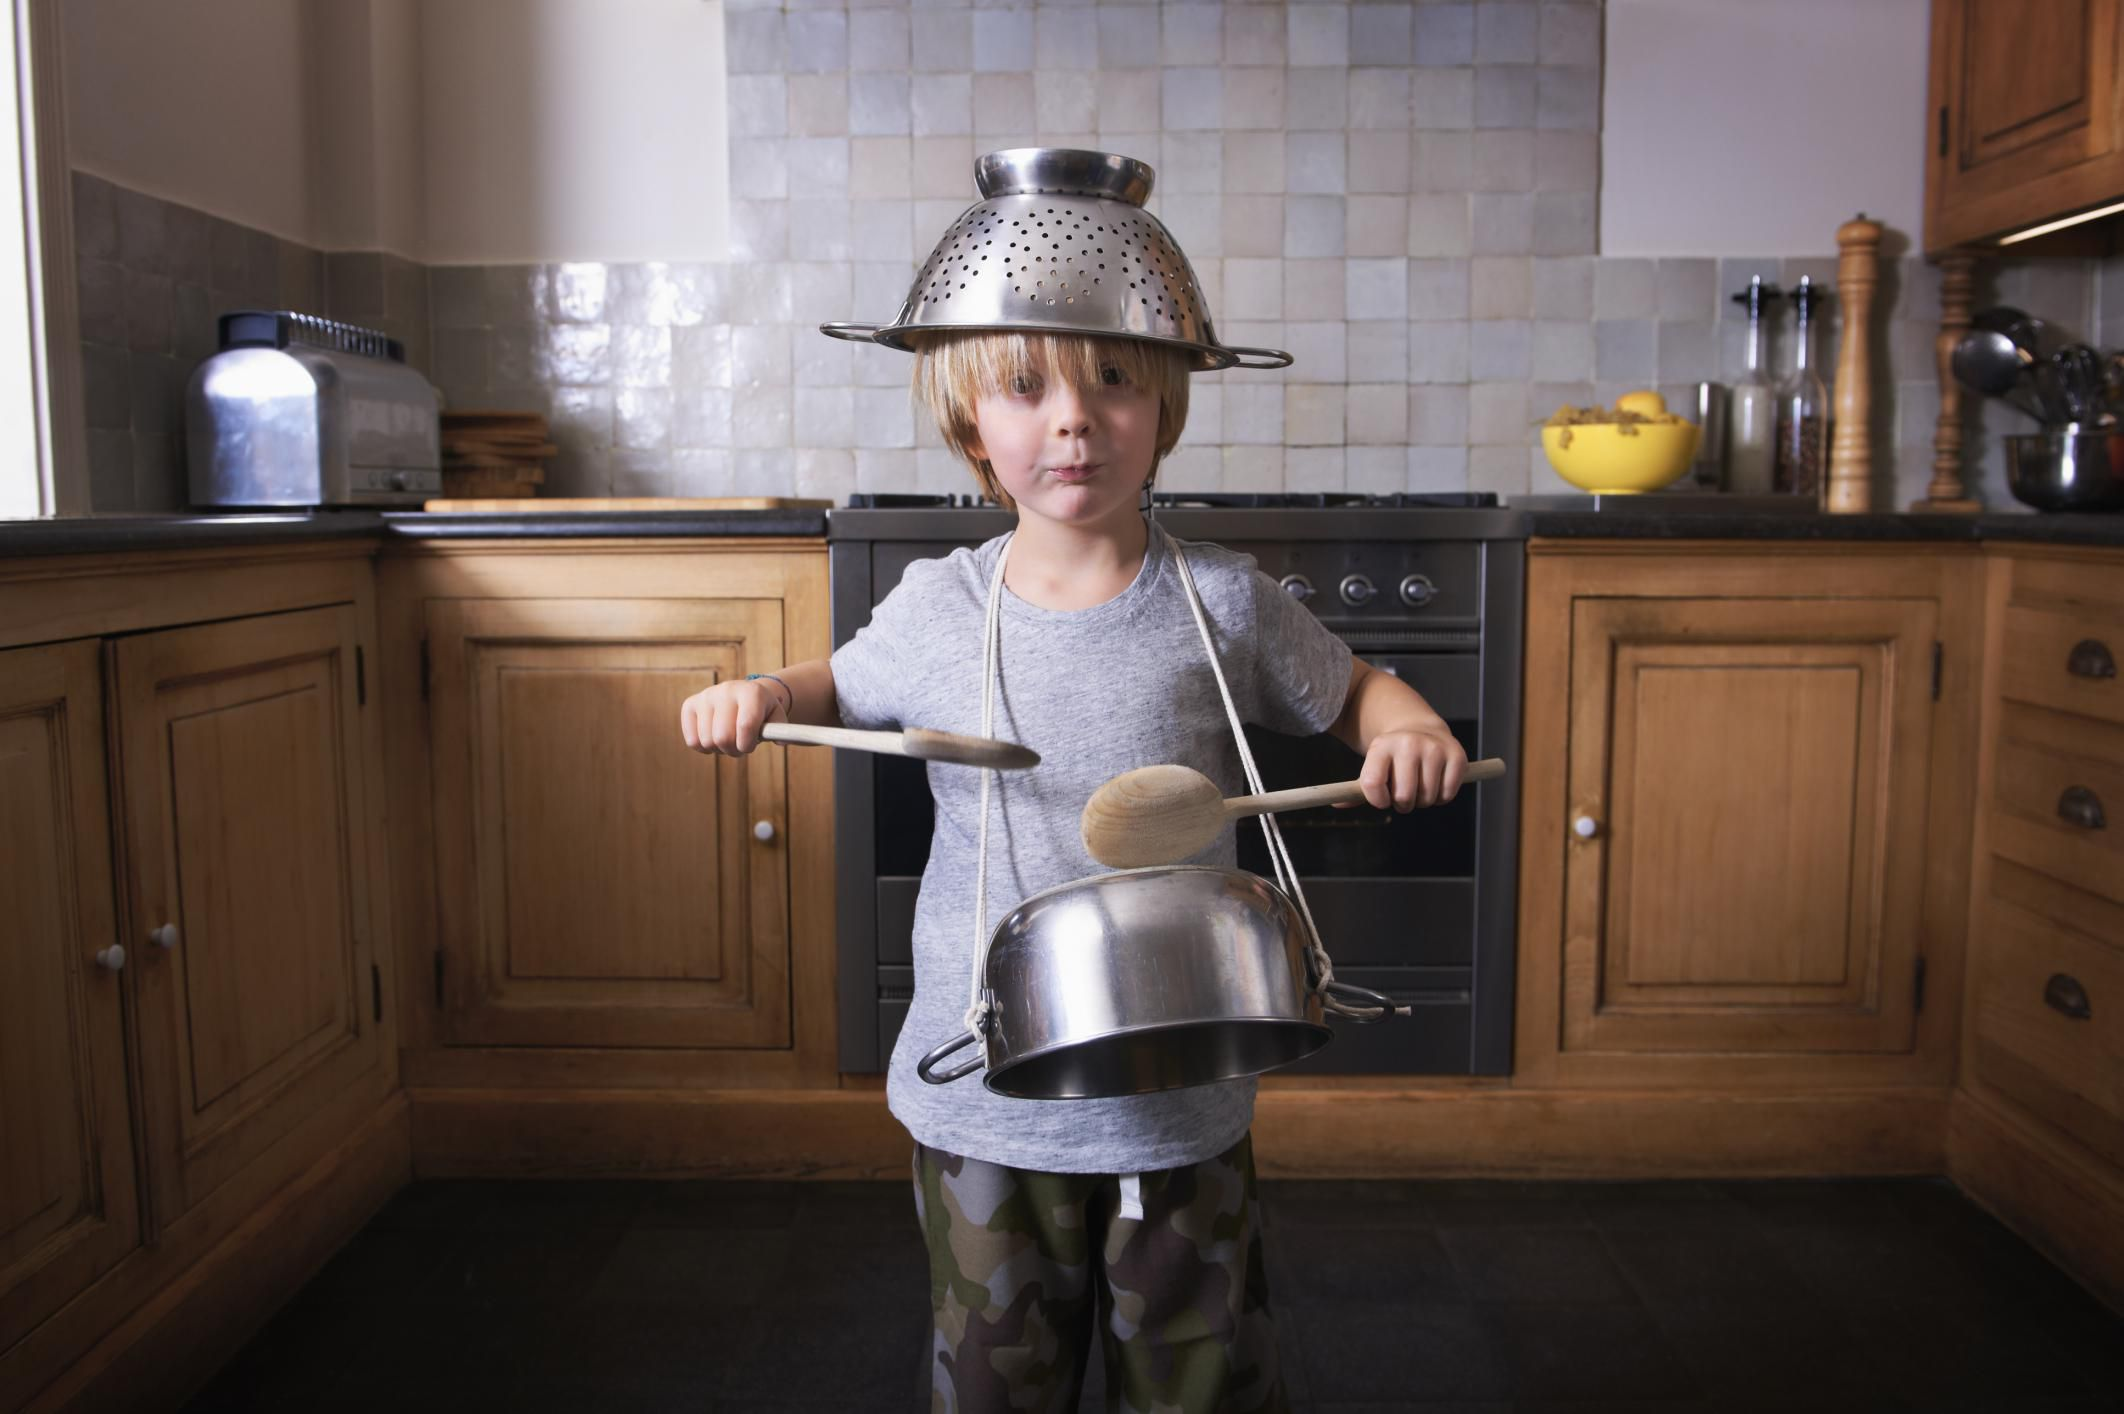 Teach Your Kids These Kitchen Safety Tips